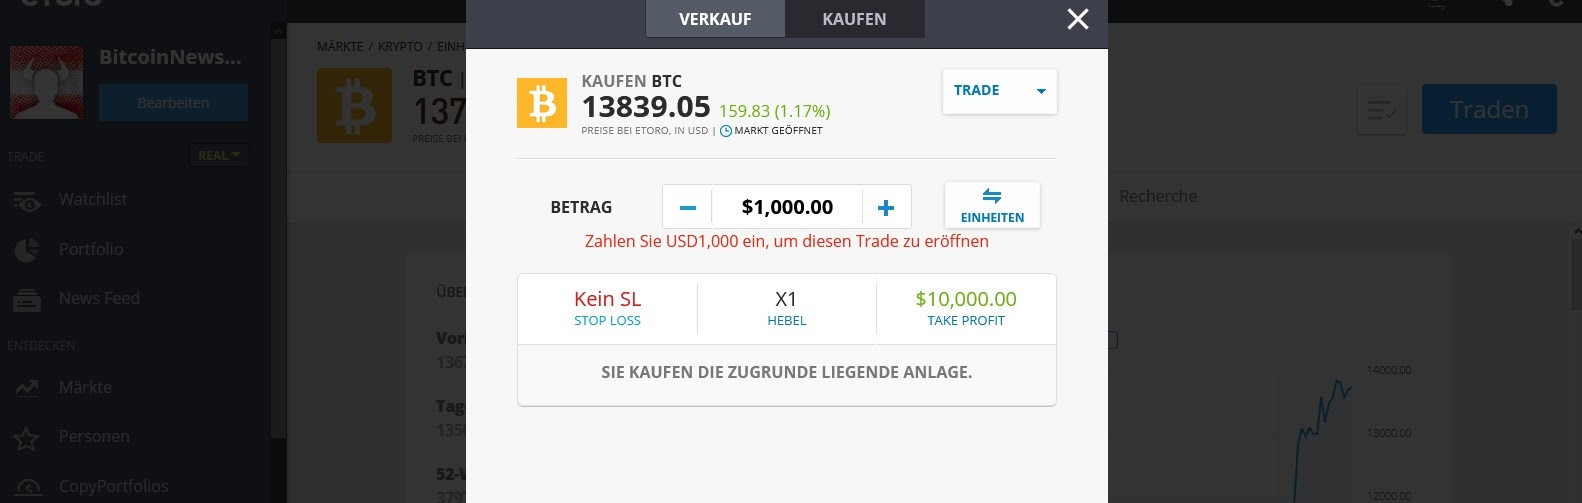 Panoramica di eToro Bitcoin Window Cure Compra e vendi